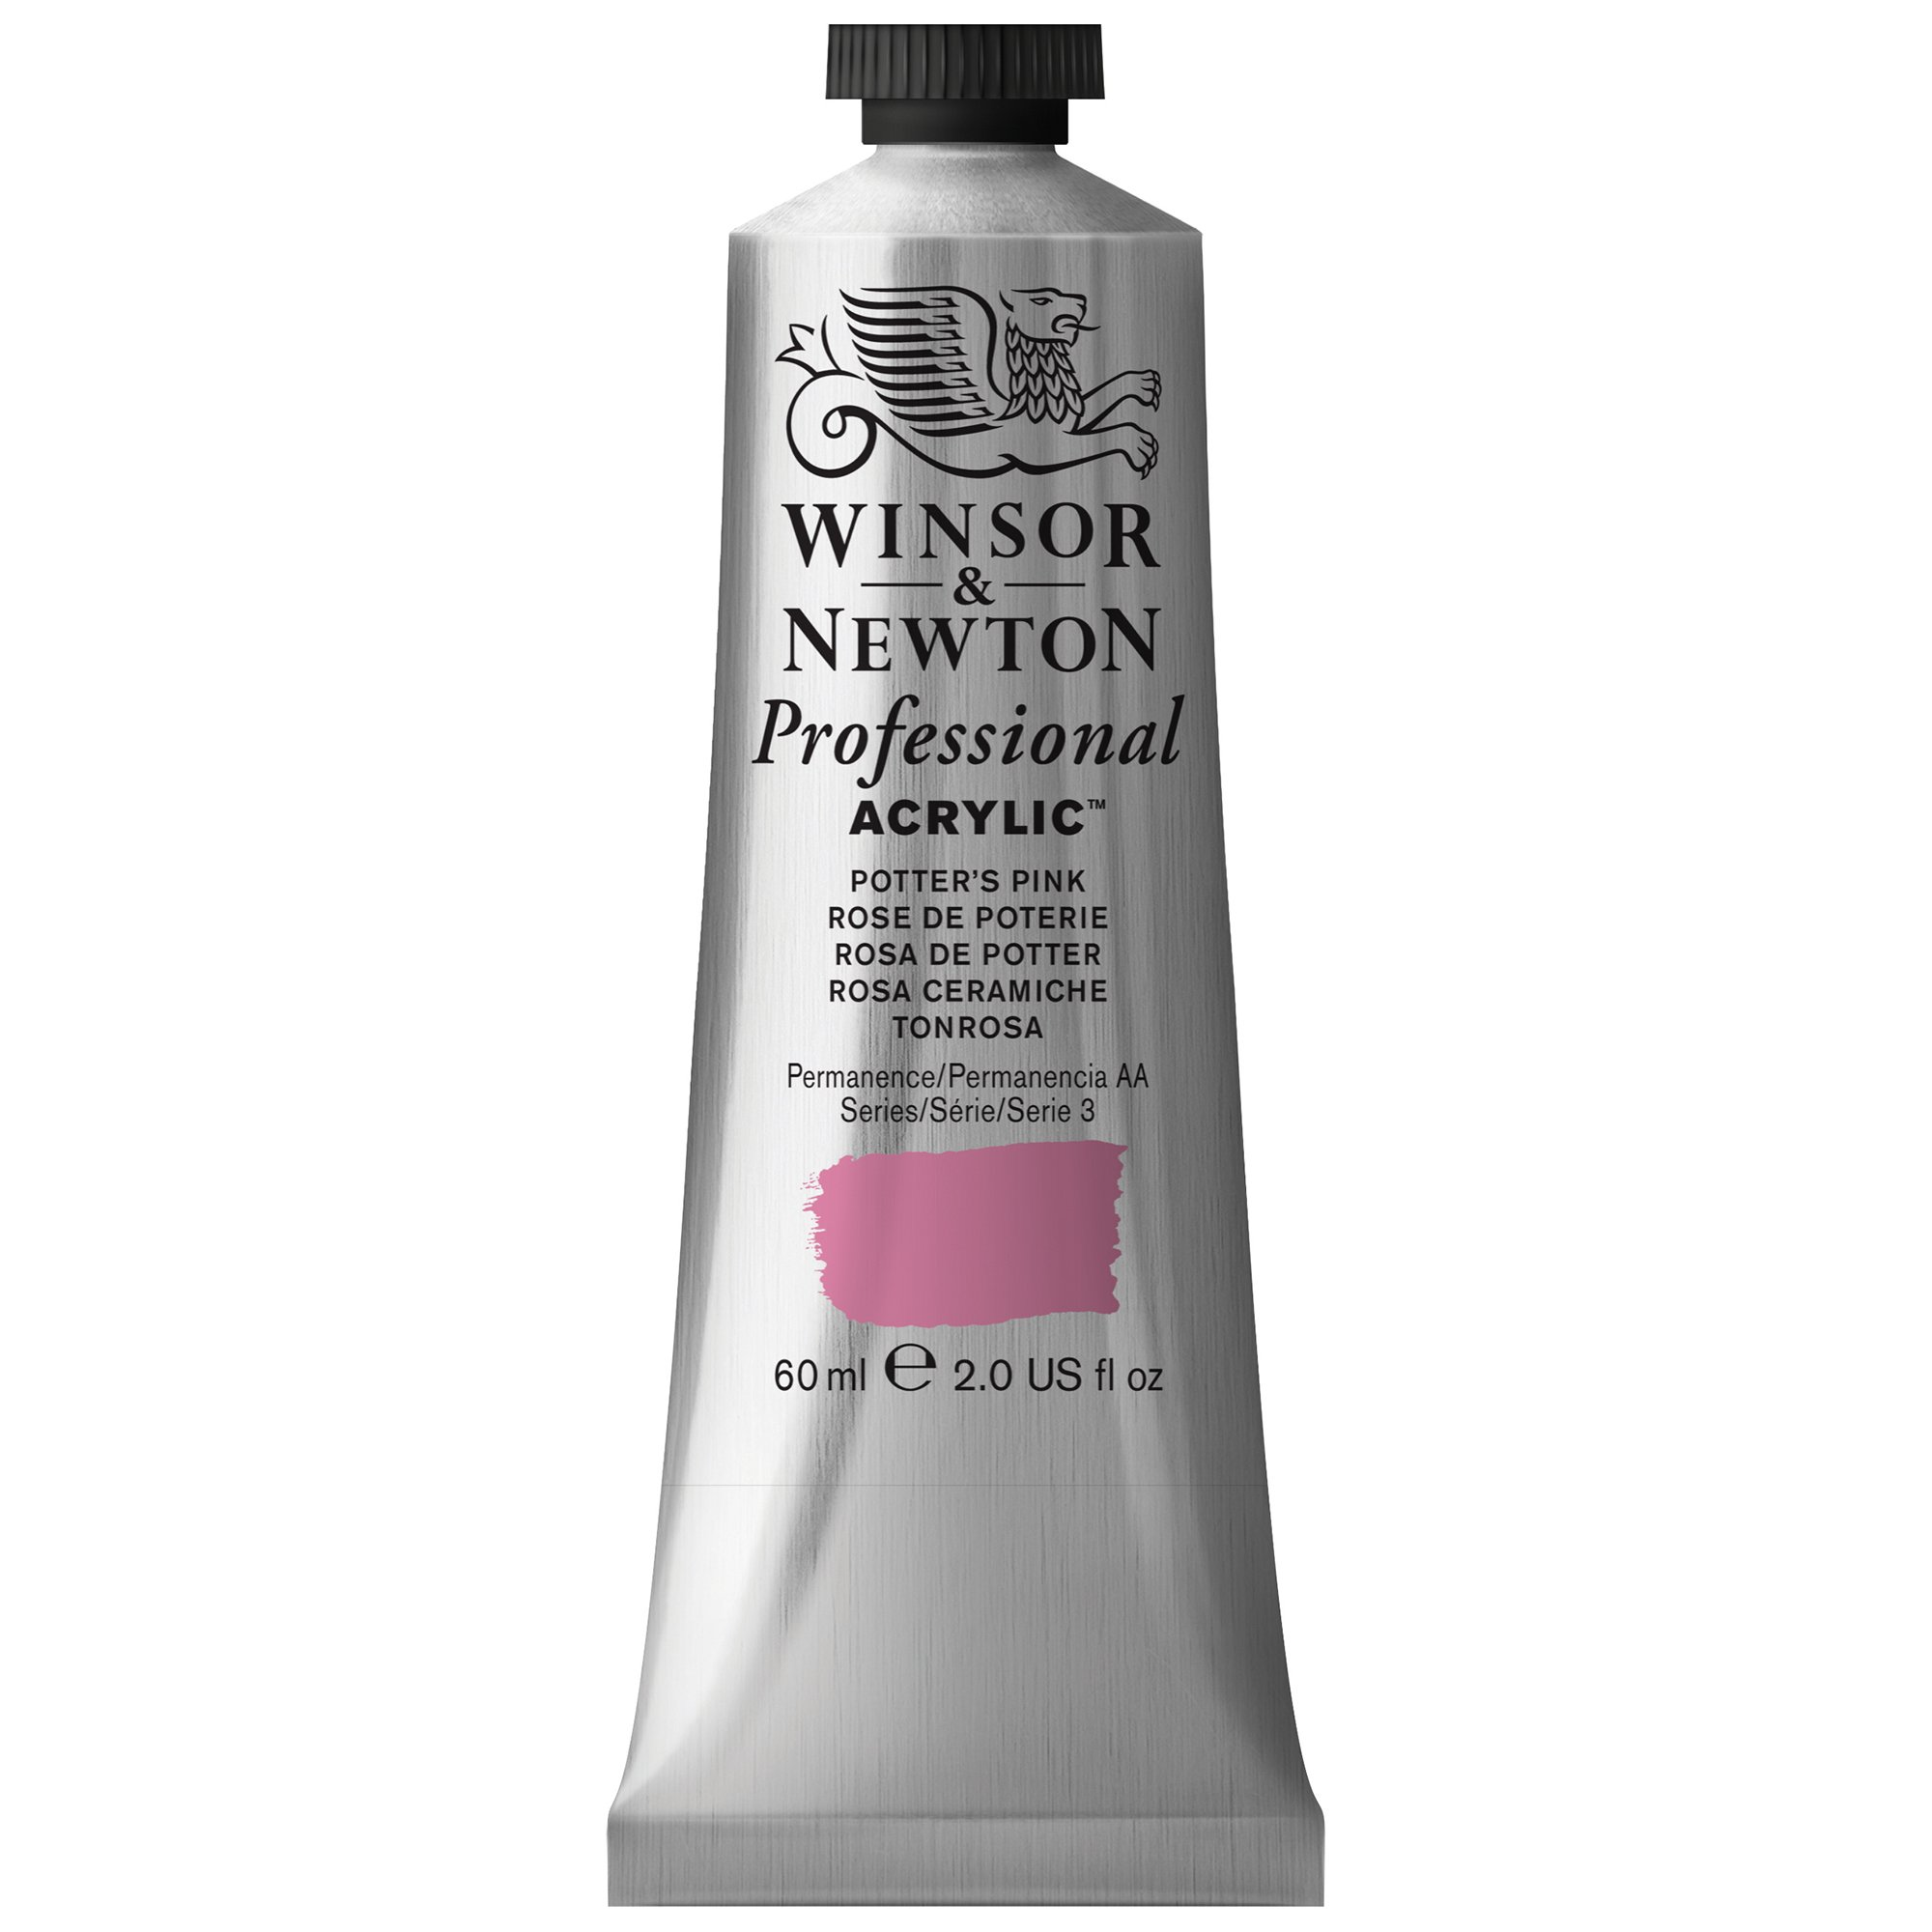 Winsor & Newton Professional Acrylic Color Paint, 60ml Tube, Potters Pink